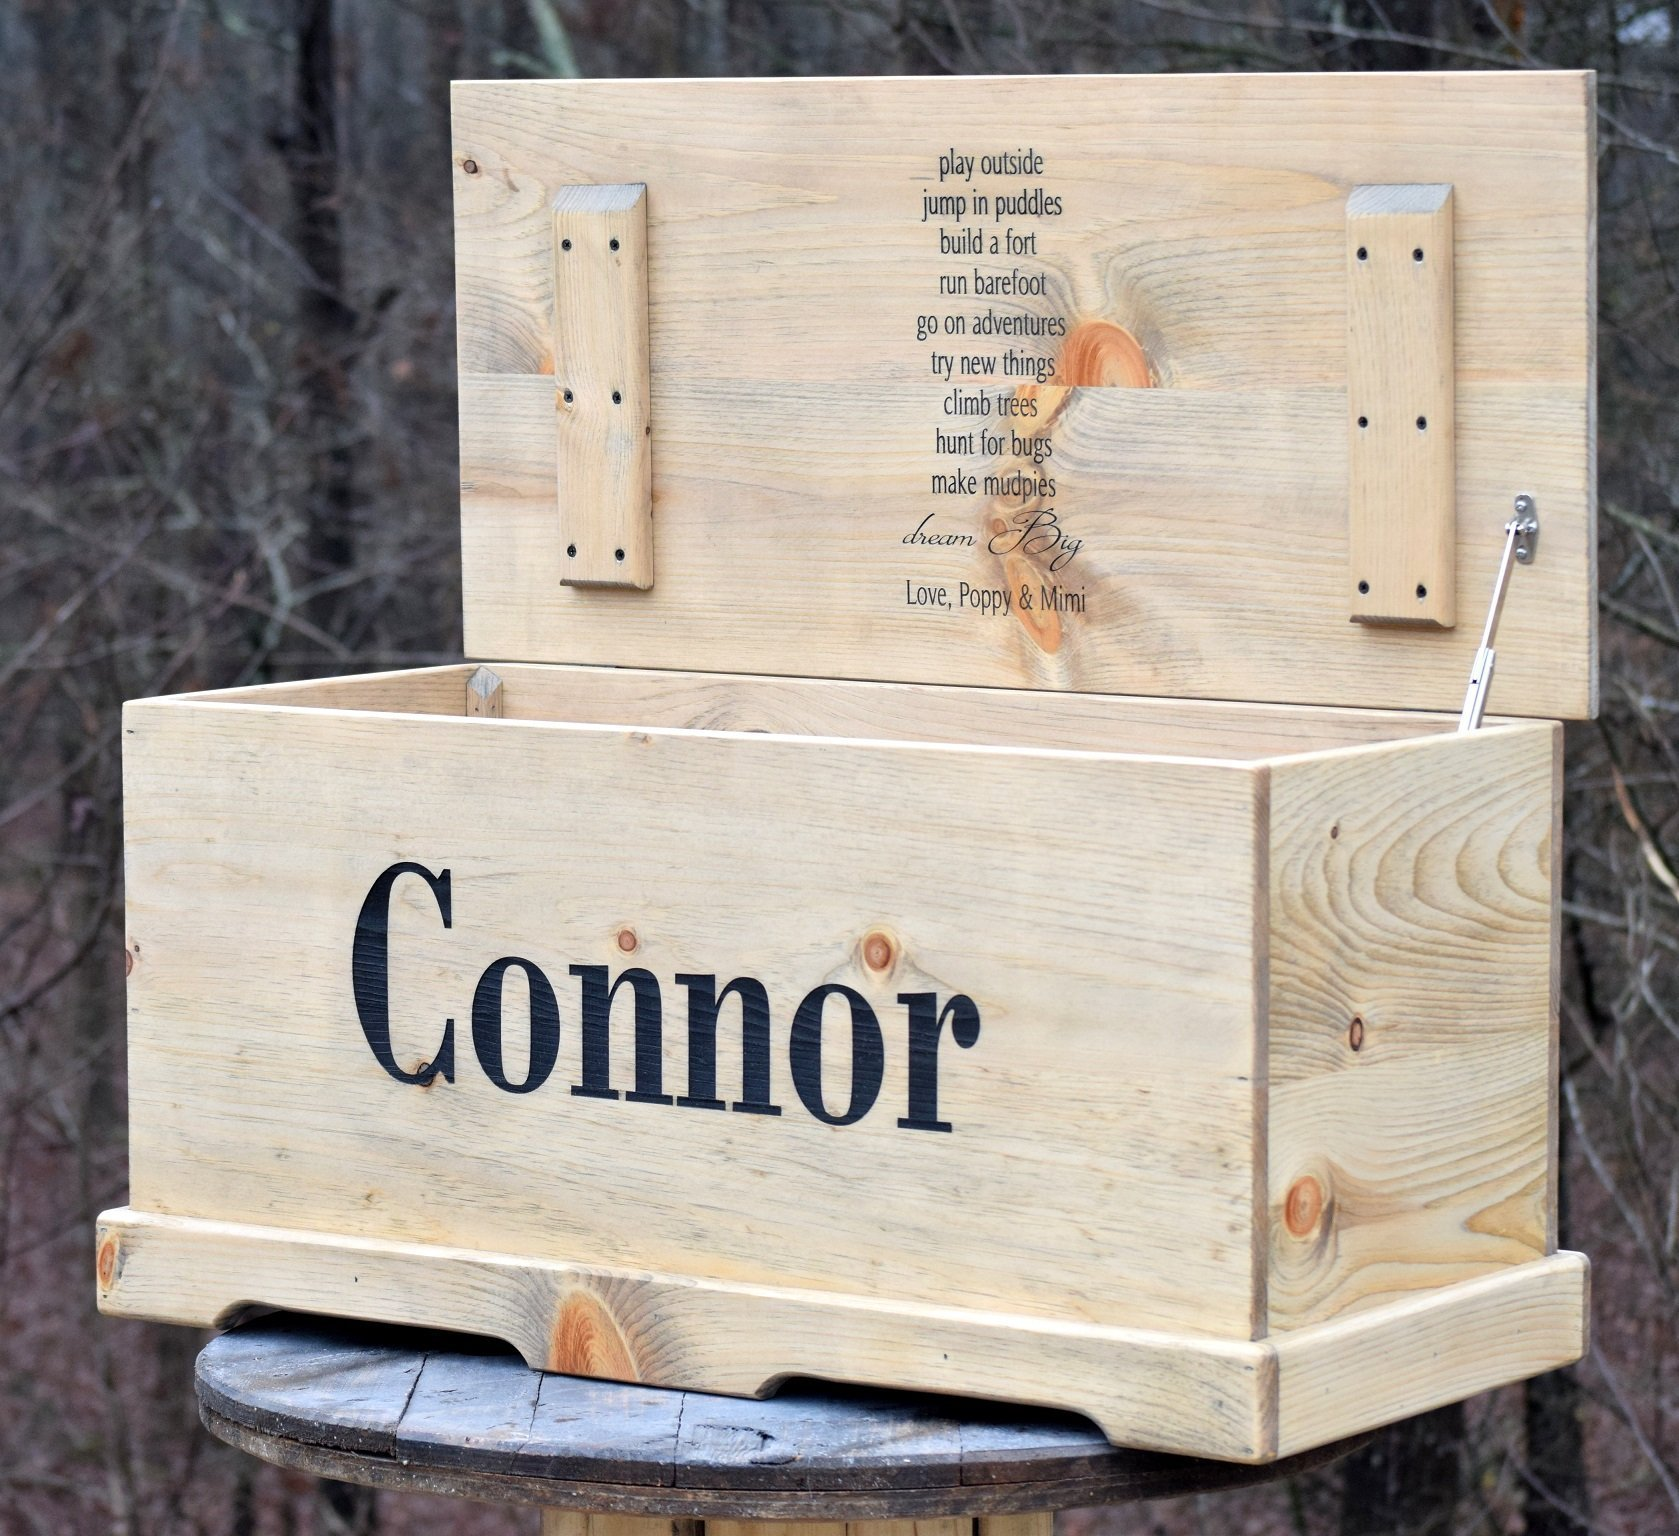 Personalized Kids Toy Box with Inside Lid Engraving - Kids Toy Chest - Kids Memory Box - Personalized Toy Box - Gift for Kids - Engraved Toy Box